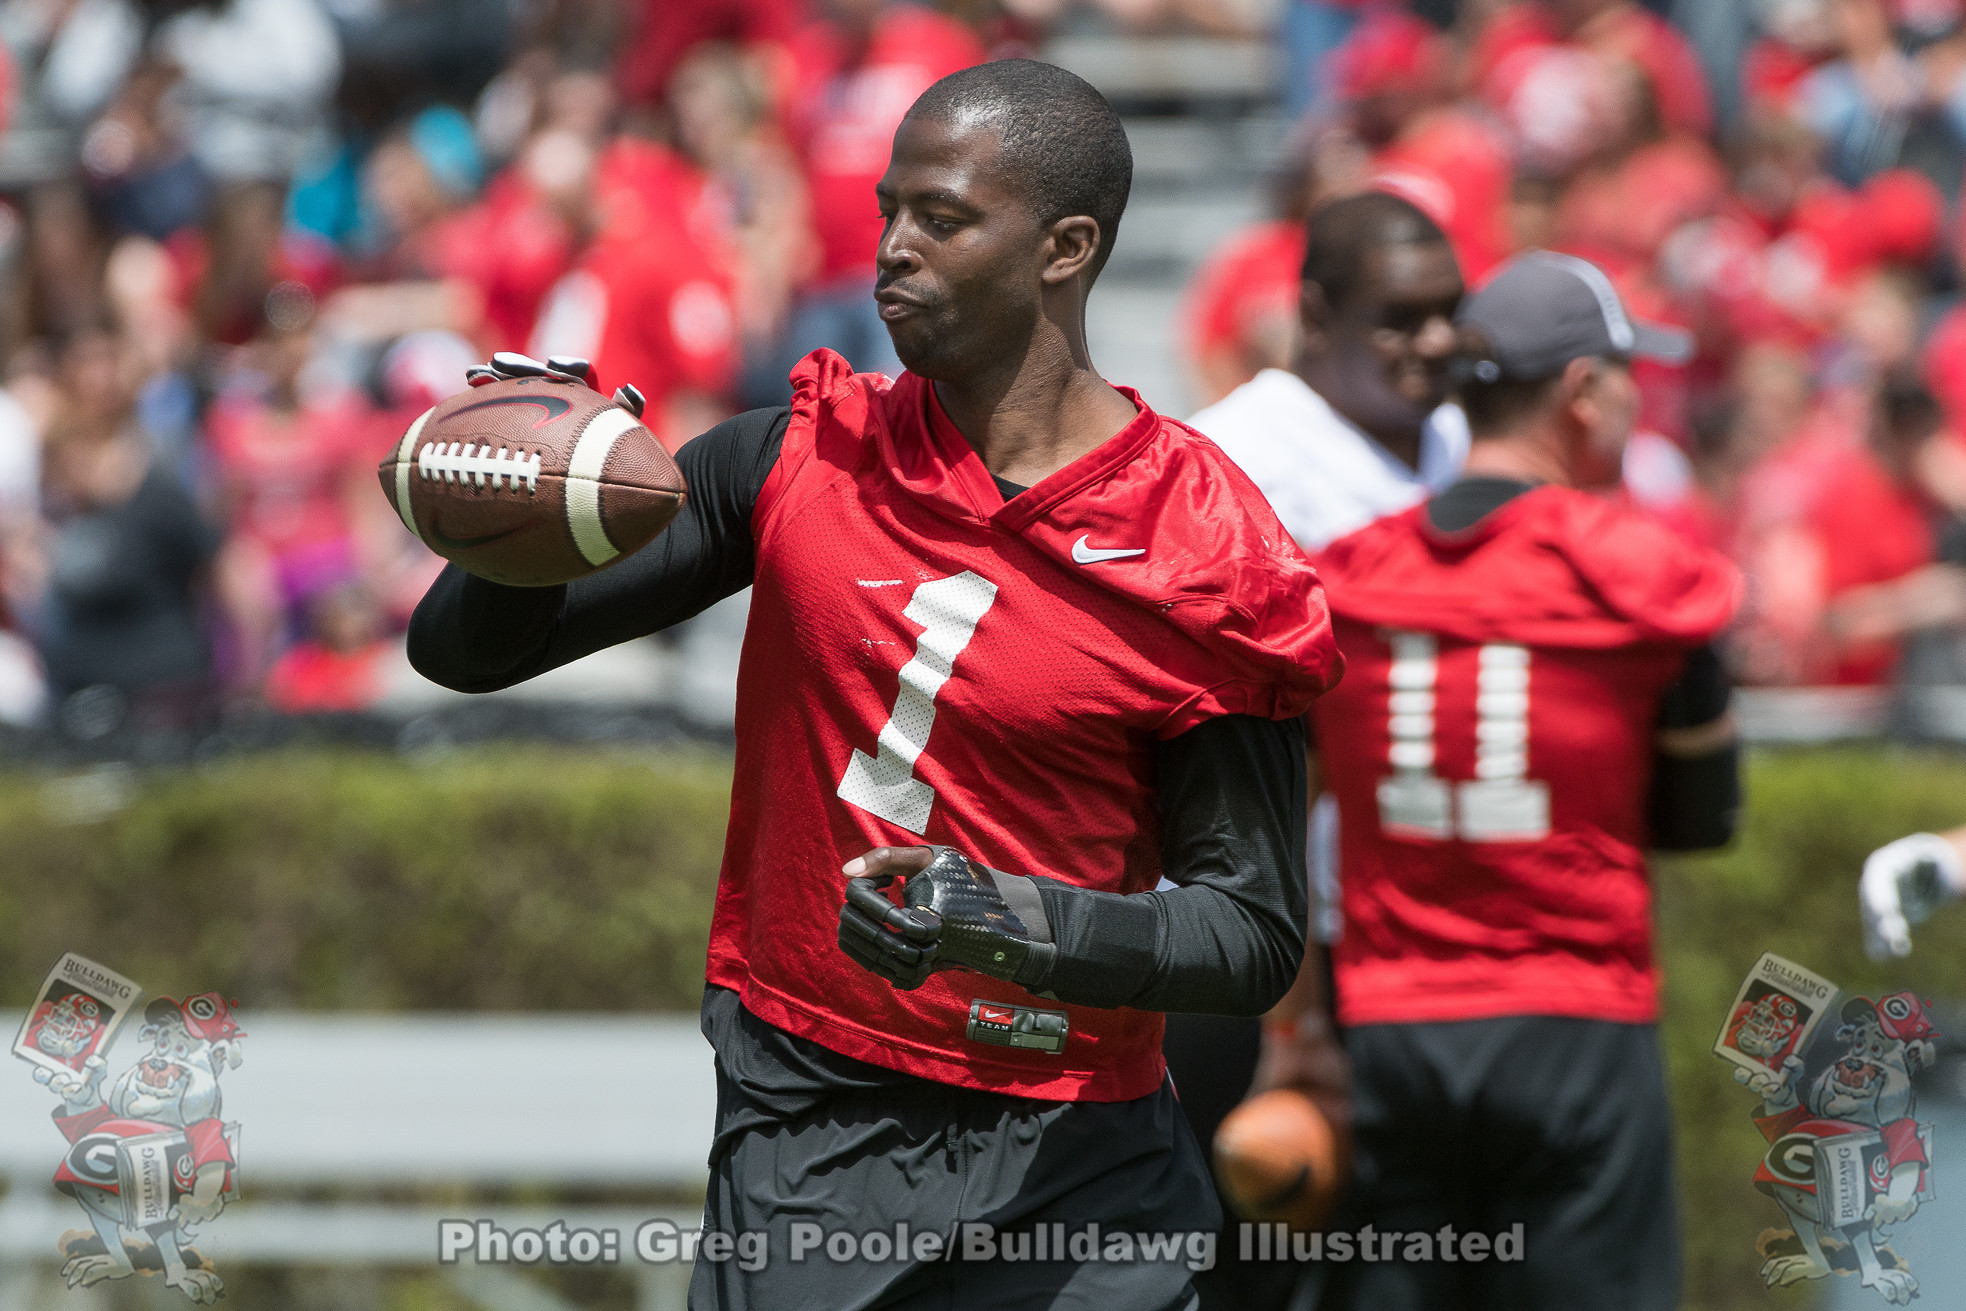 G-Day 2019 Rosters Announced – Bulldawg Illustrated